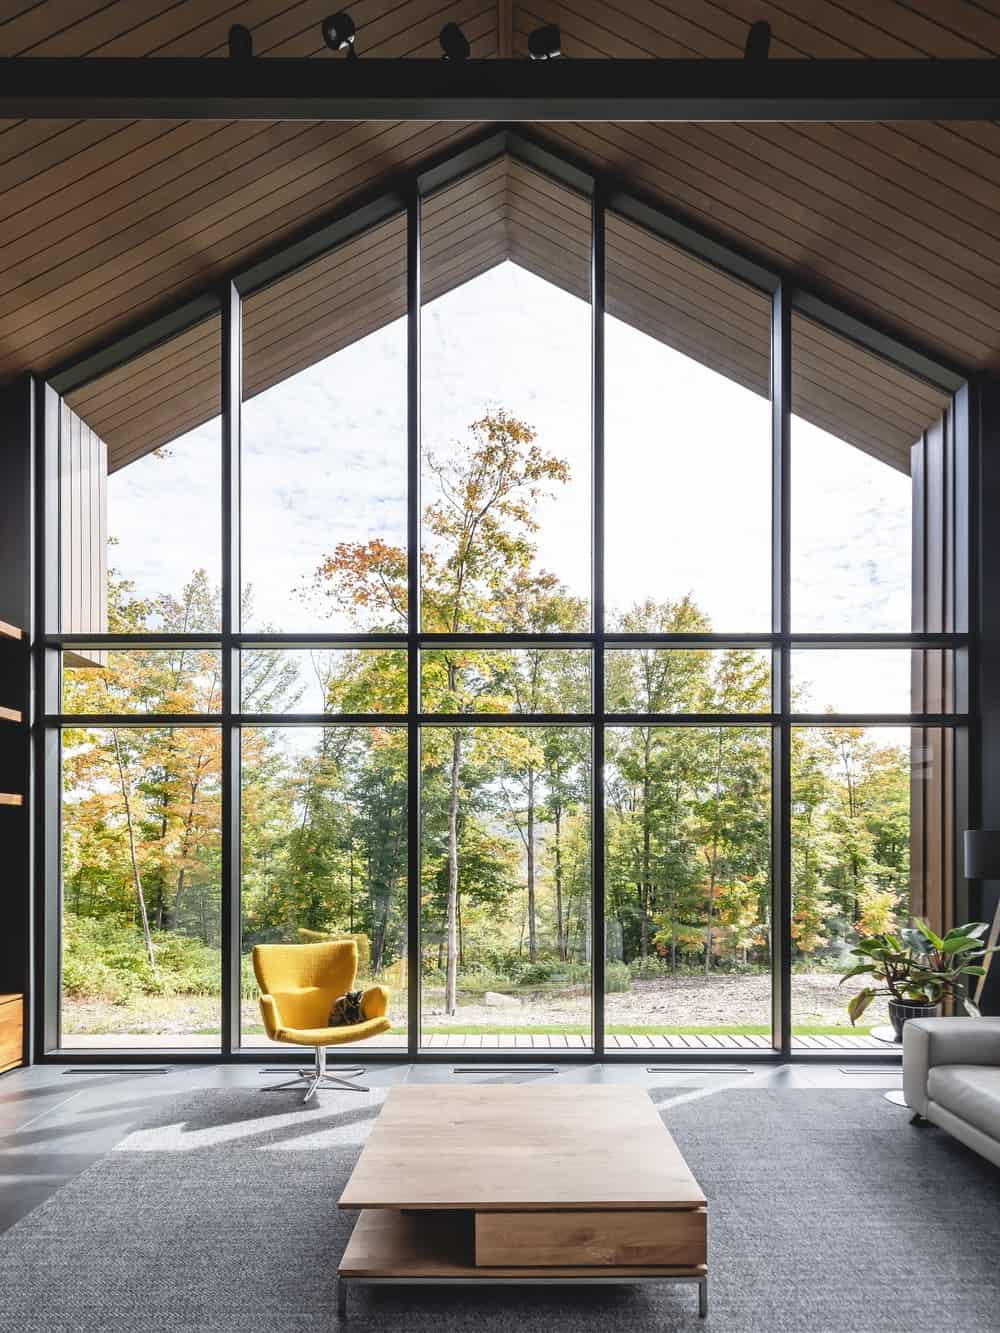 This is an interior look at the living room with a tall ceiling and a large glass wall that showcases the tall trees outside.